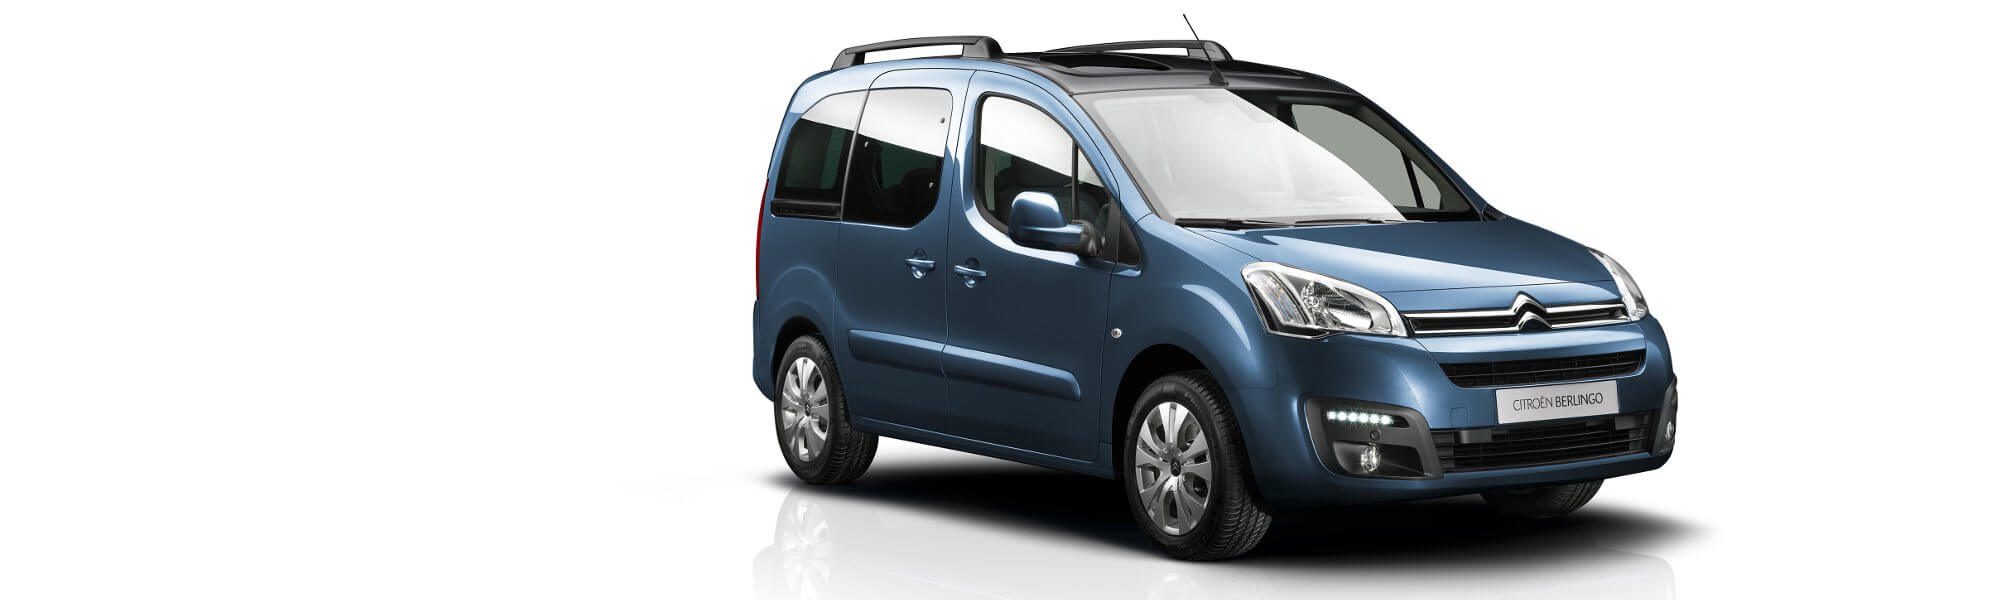 Ulmen-citroen-berlingo-multispace-slider